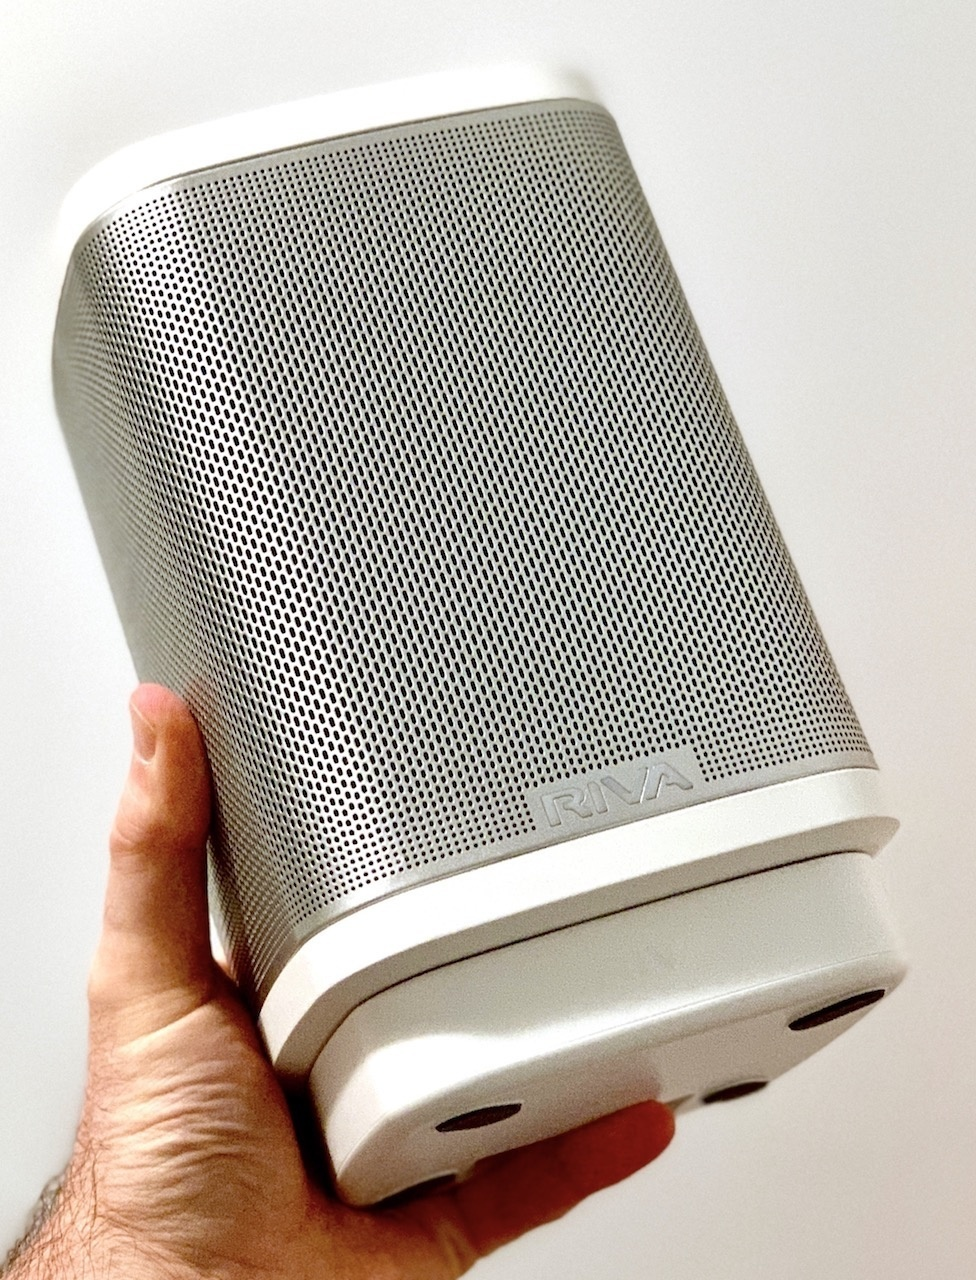 Picture of Riva Concert smart speaker being held up in one hand.